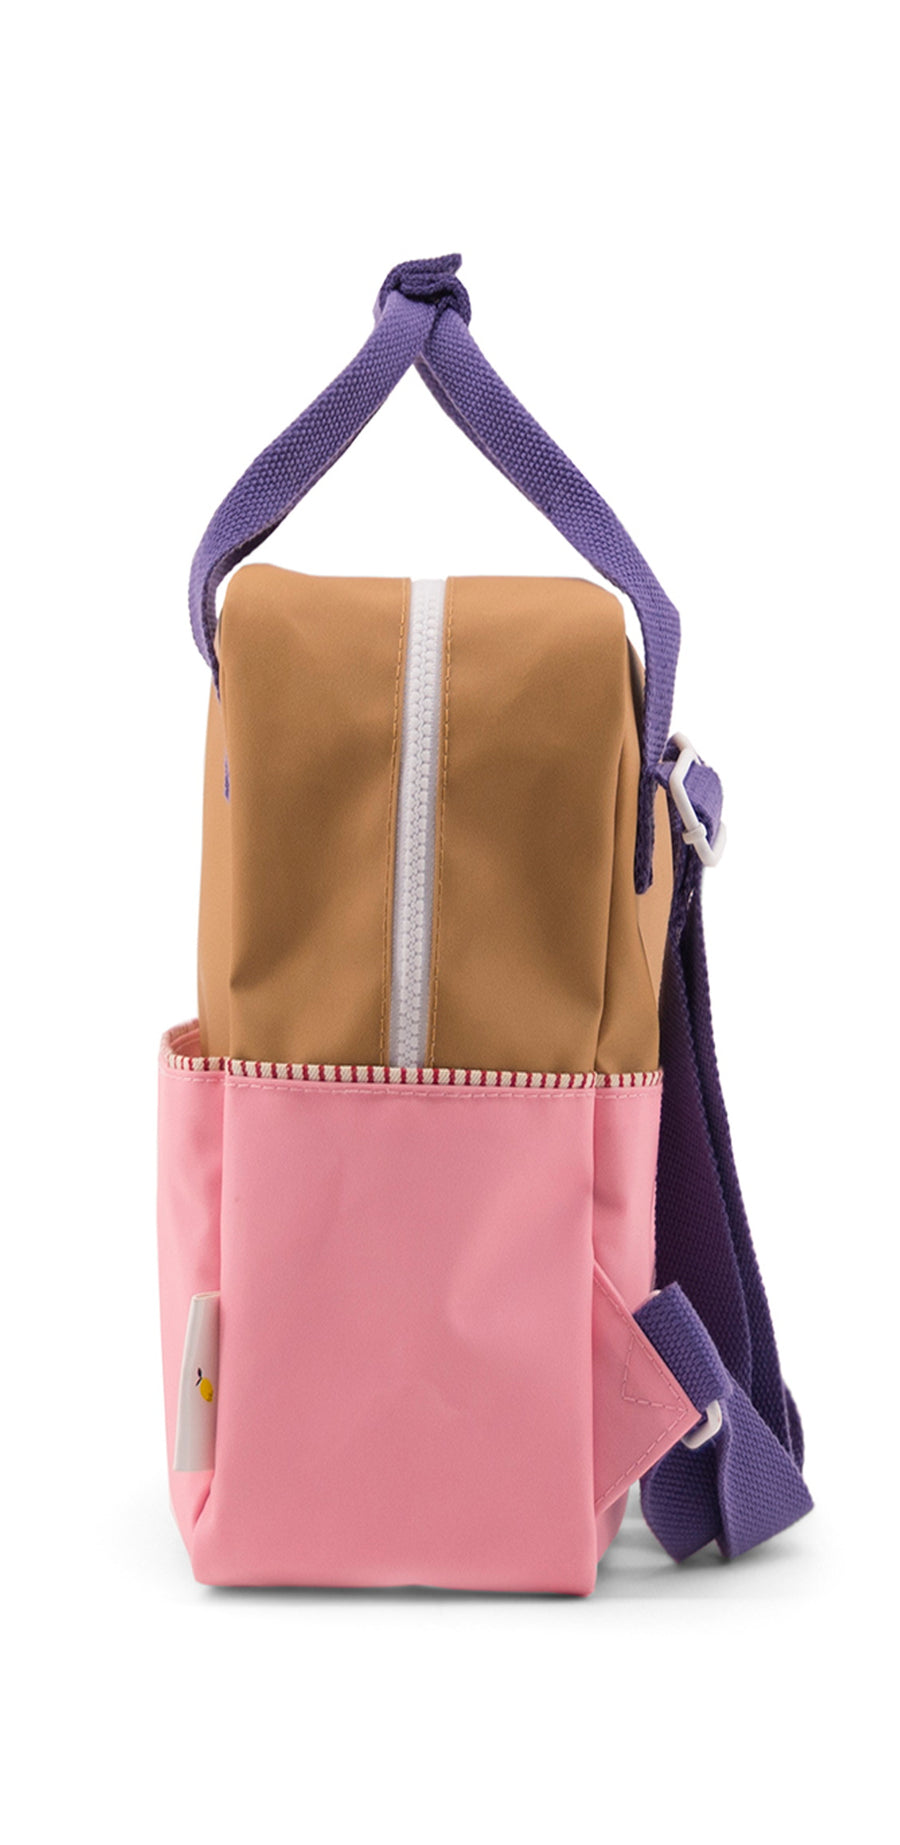 Sticky Lemon Color Block Collection Small Backpack, Panache Gold/Puff Pink/Lobby Purple